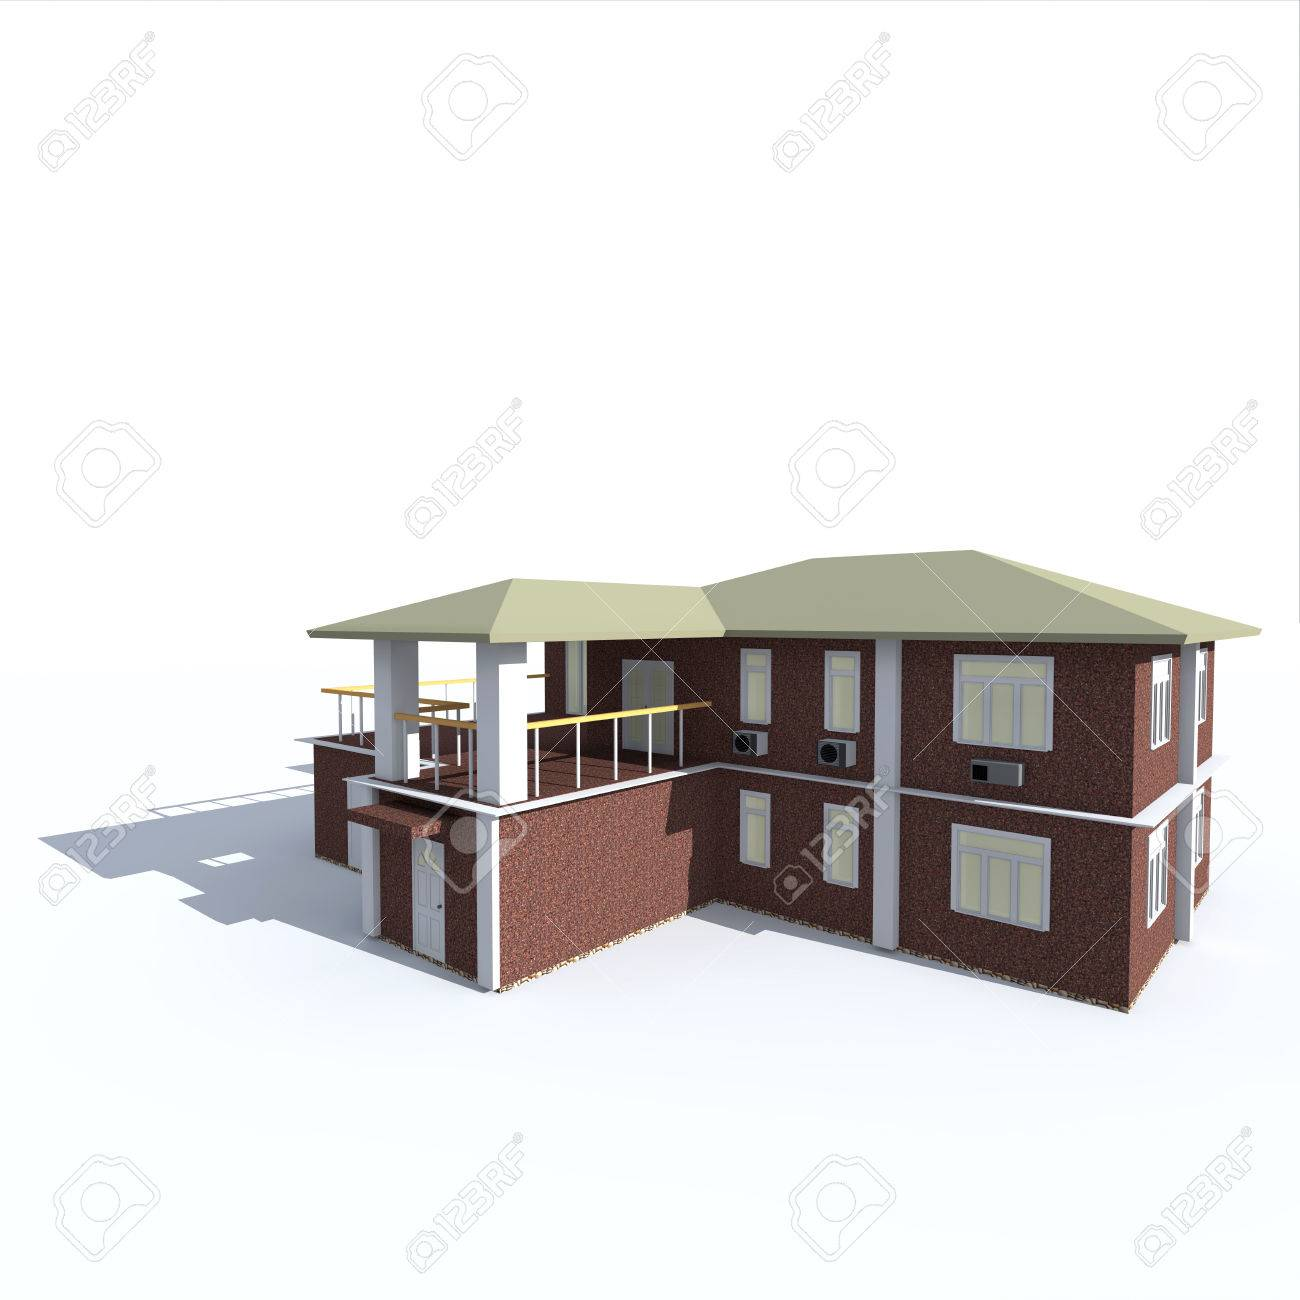 The Two Storey House Made Of Natural Stone With Balconies On Stock Photo Picture And Royalty Free Image Image 29124238